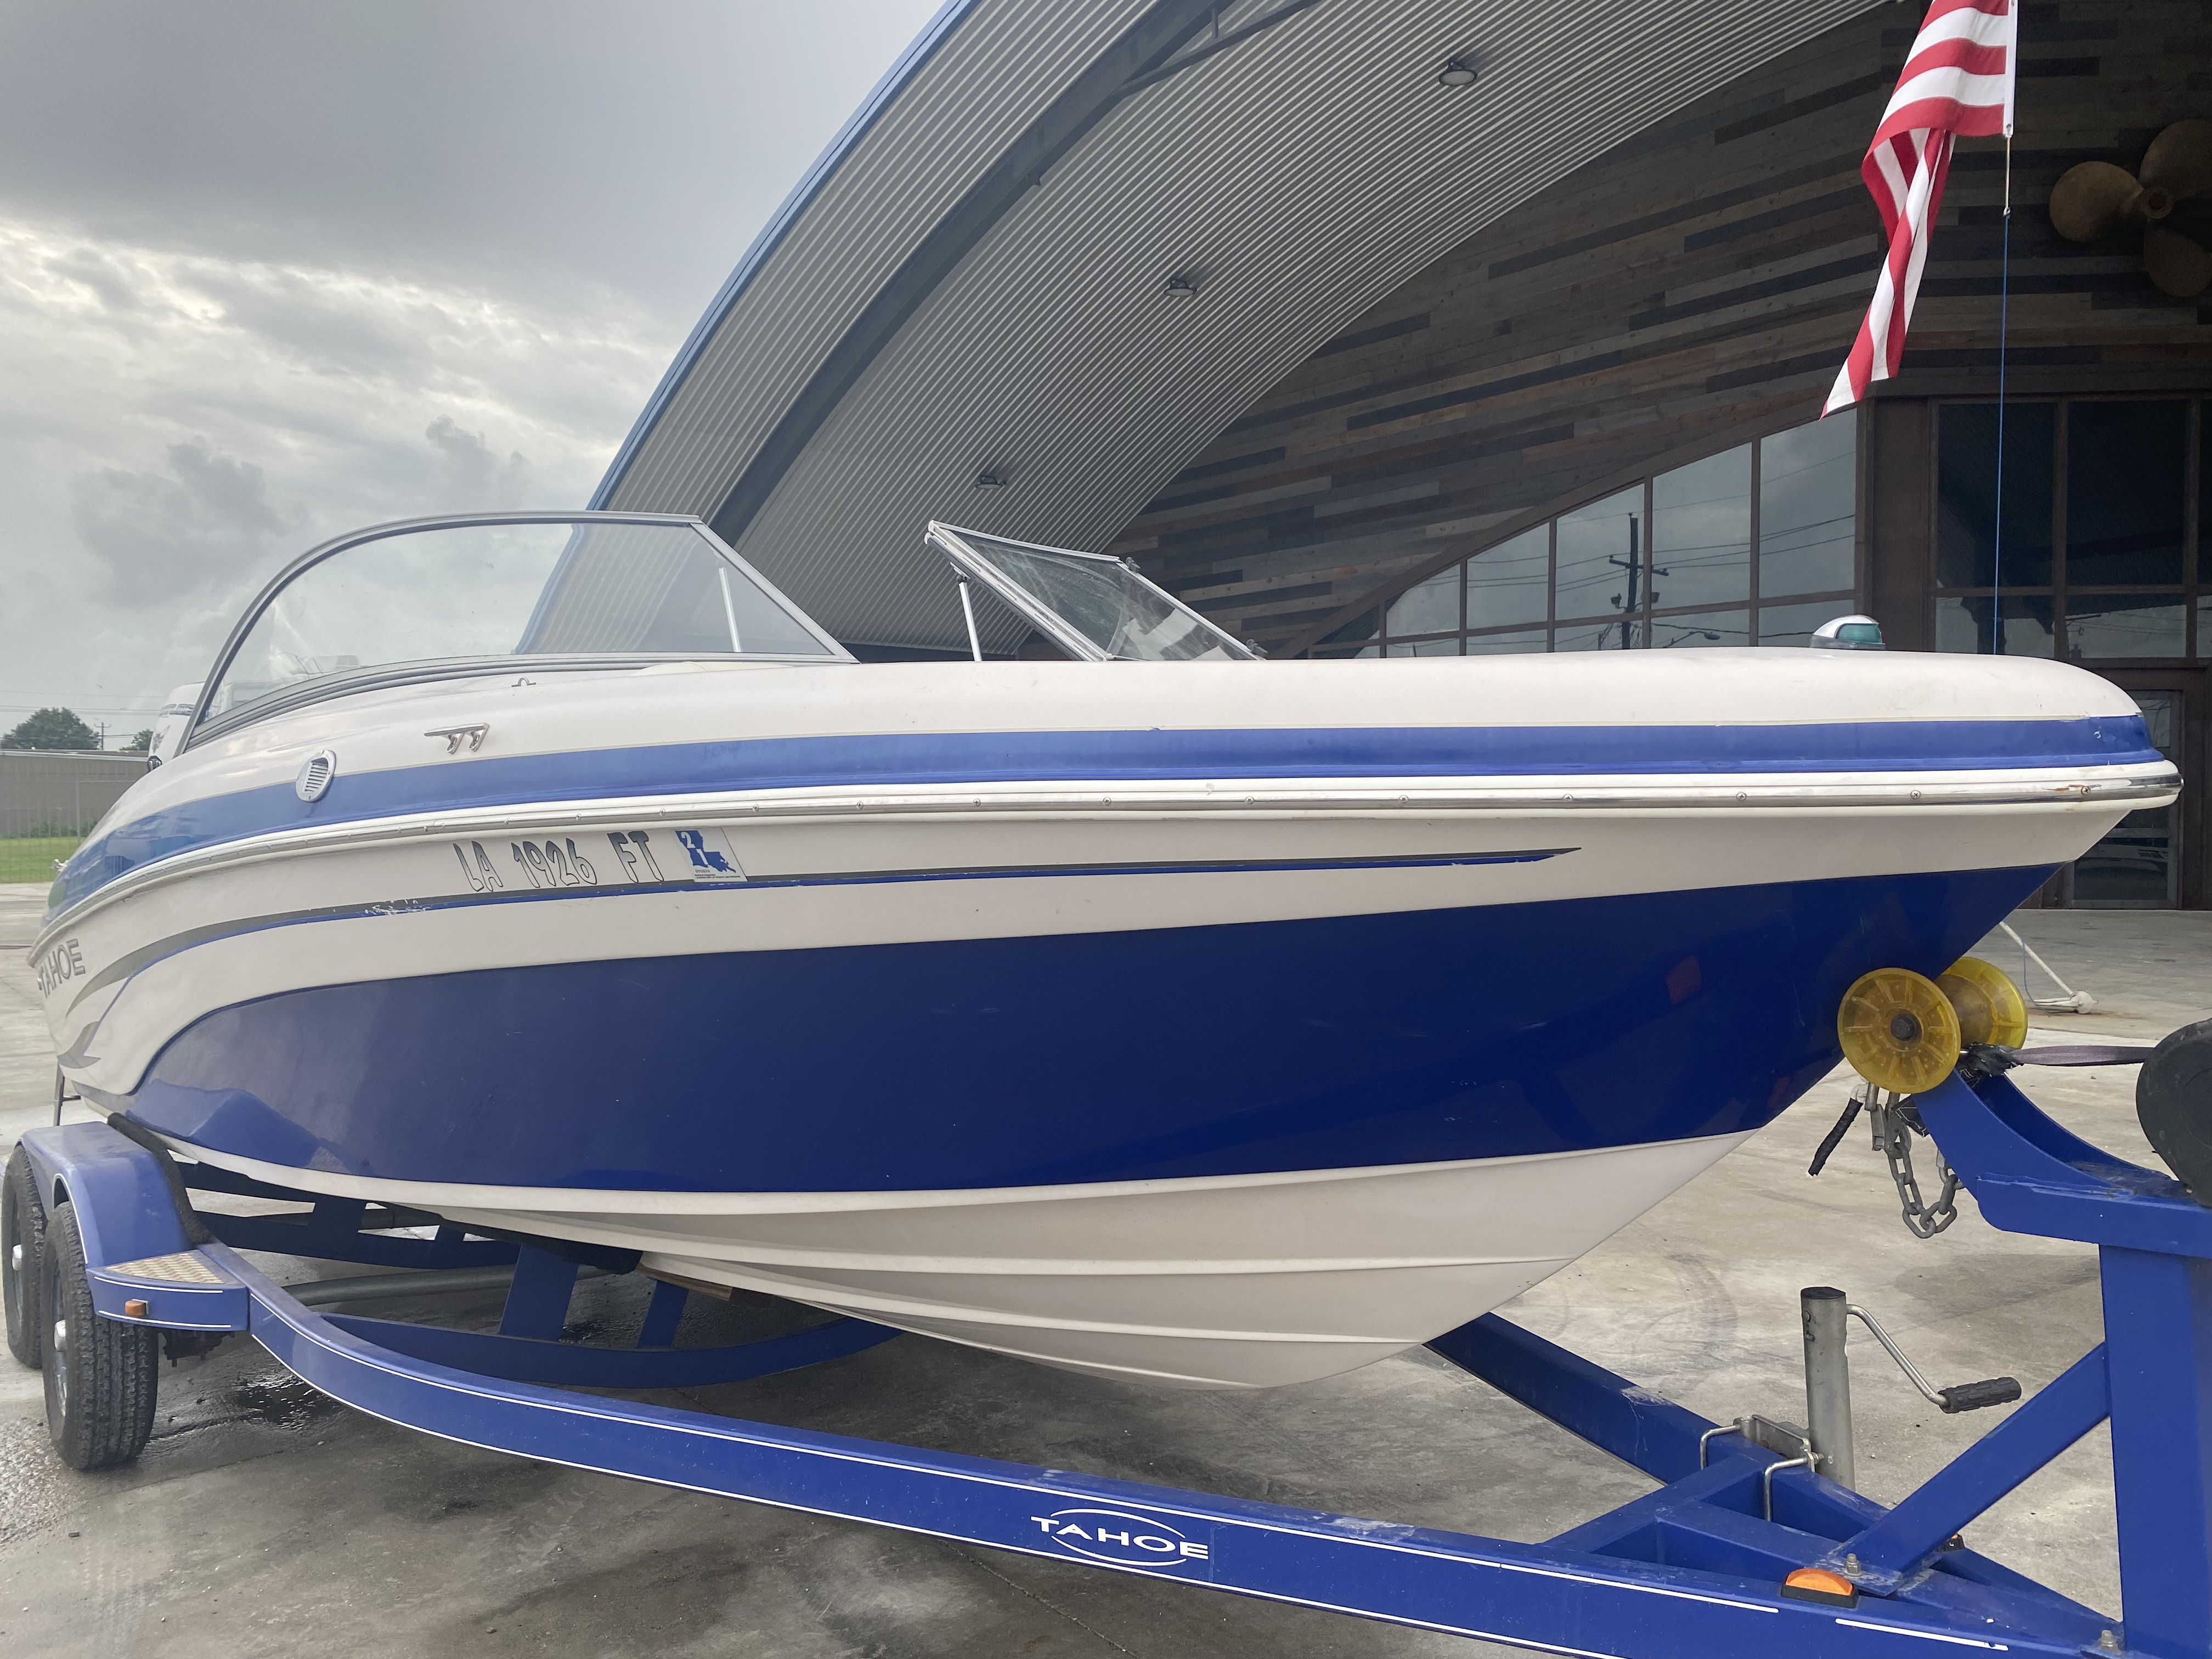 2008 Tahoe boat for sale, model of the boat is Q6 & Image # 2 of 10